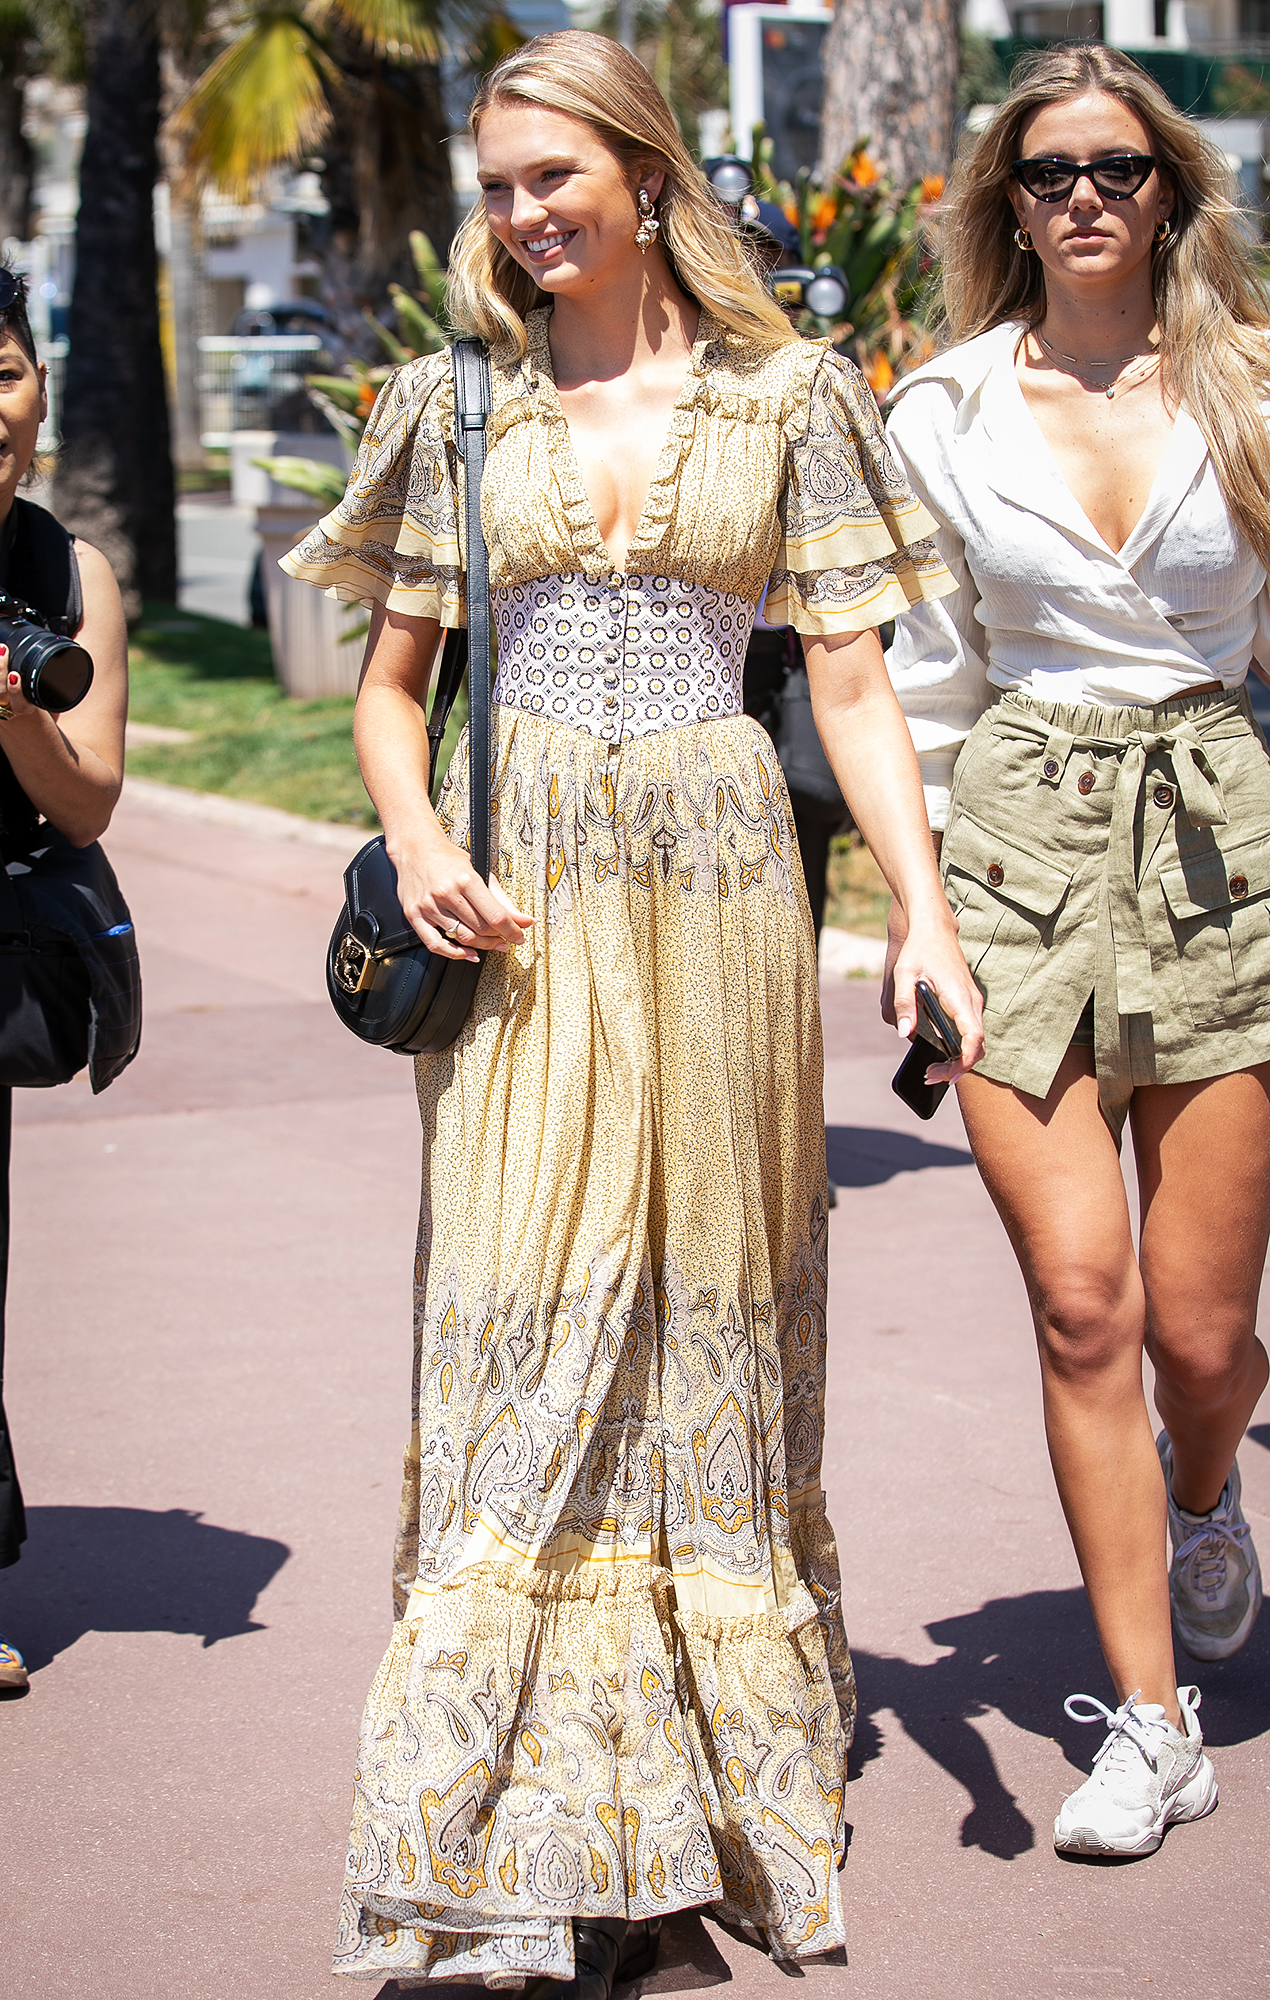 Romee-Strijd - It was all about the boho vibes for the model in a printed maxidress on Wednesday, May 15.